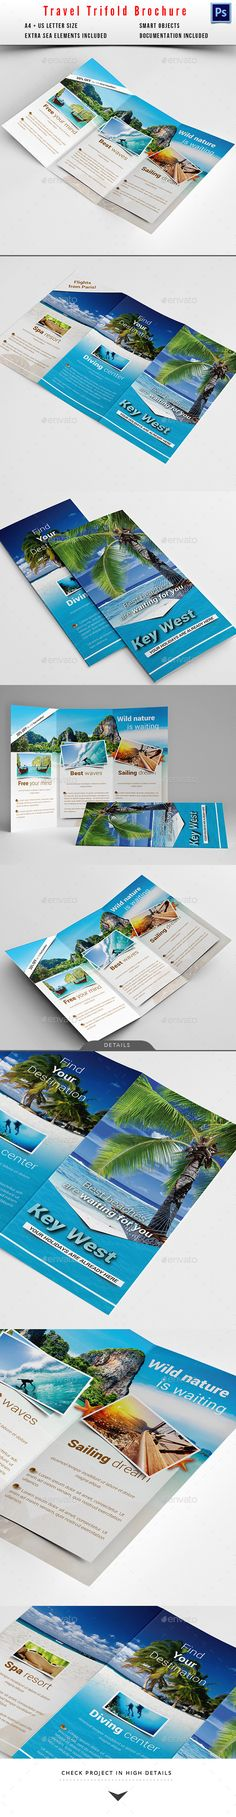 Travel / Holiday Trifold Brochure Template #design Download: http://graphicriver.net/item/travel-holiday-trifold-brochure/10350914?ref=ksioks